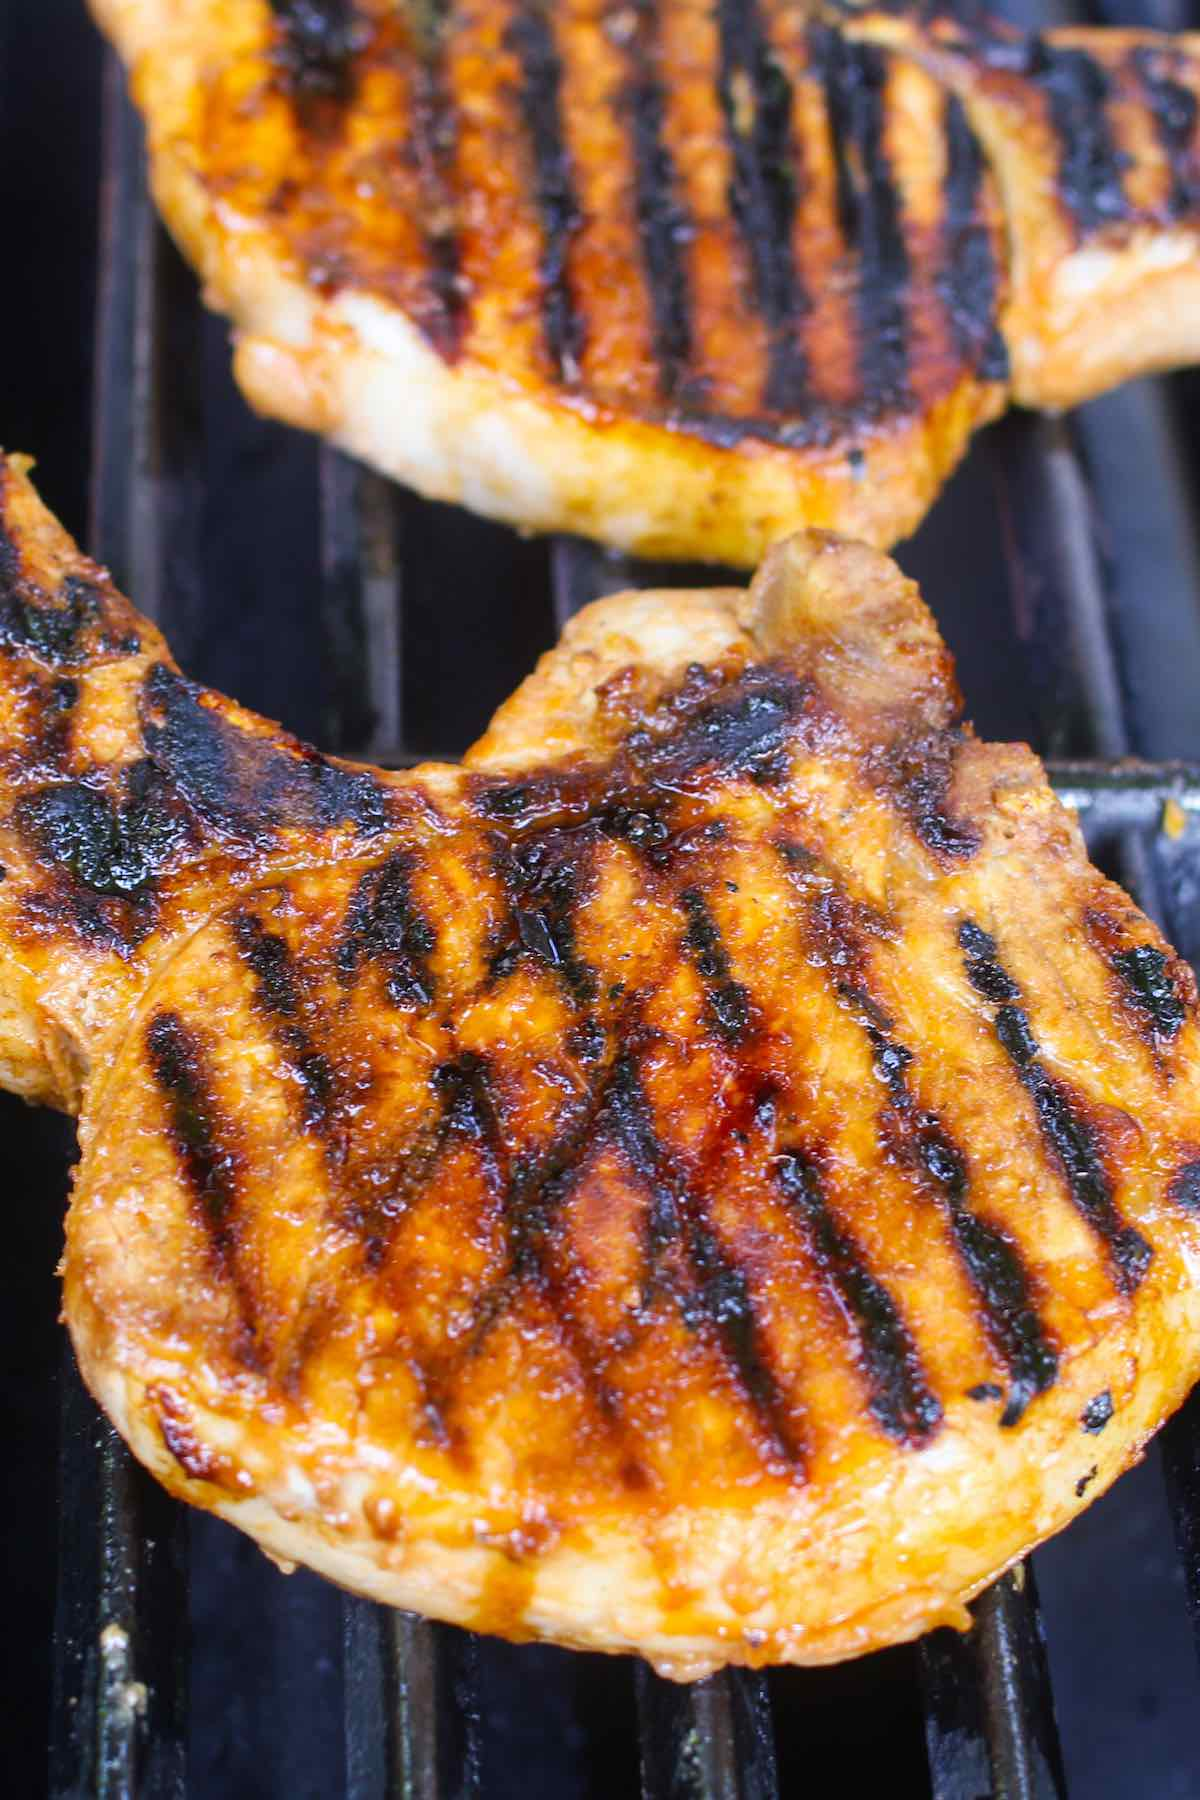 Marinated pork chops on the grill.